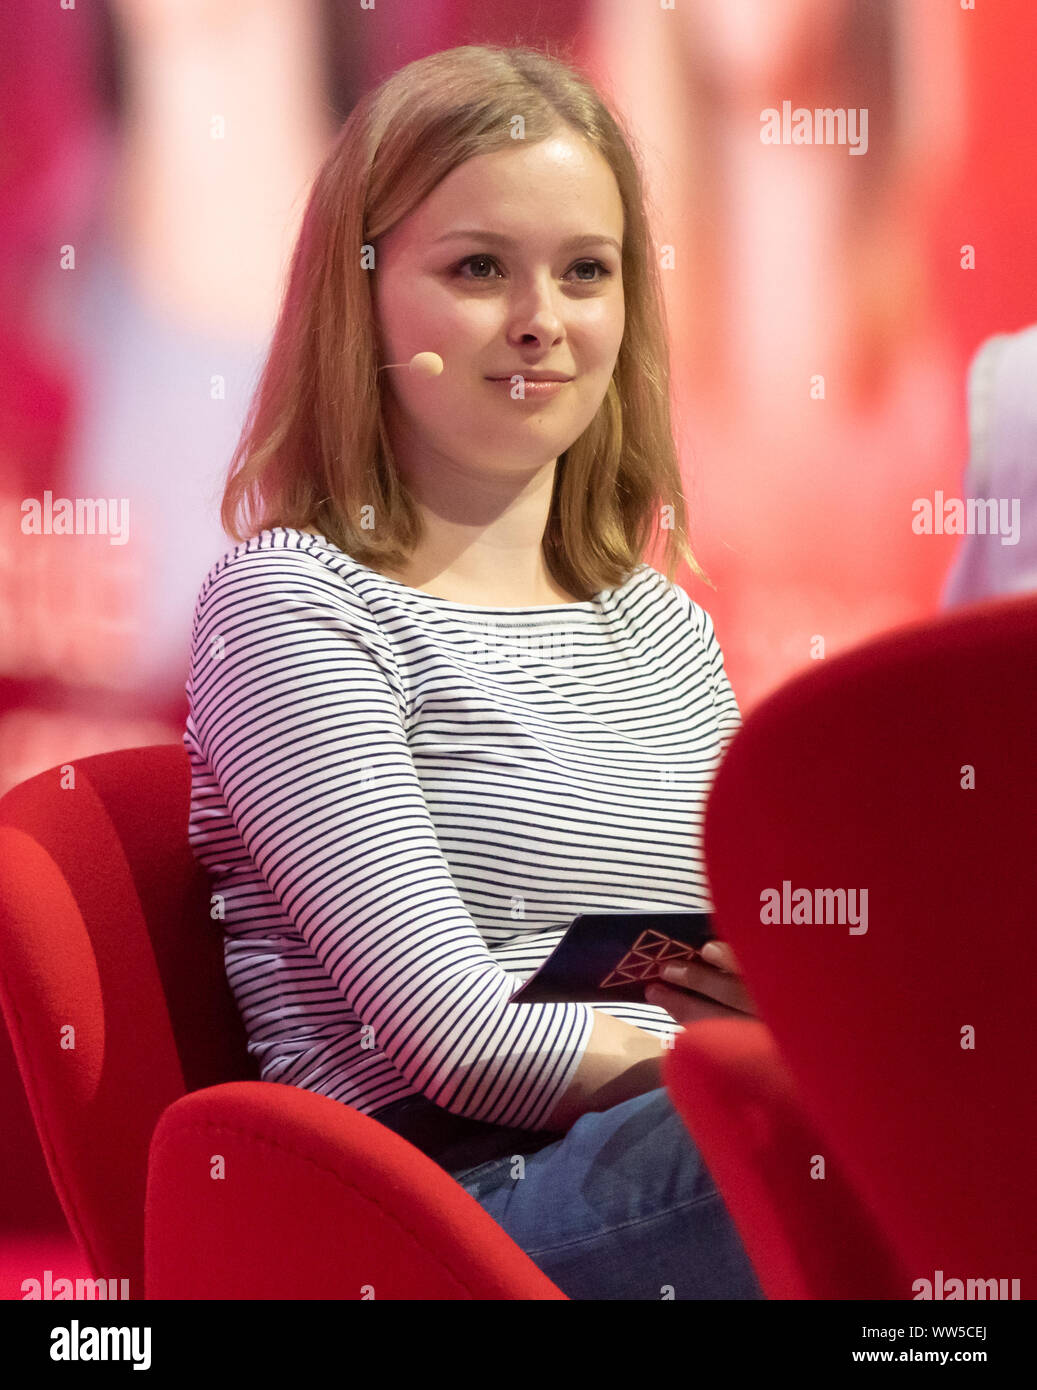 Cologne, Germany, 12.09.2019, DMEXCO digital marketing expo and conference: Youtuber Lisa Sophie Laurent. Stock Photo